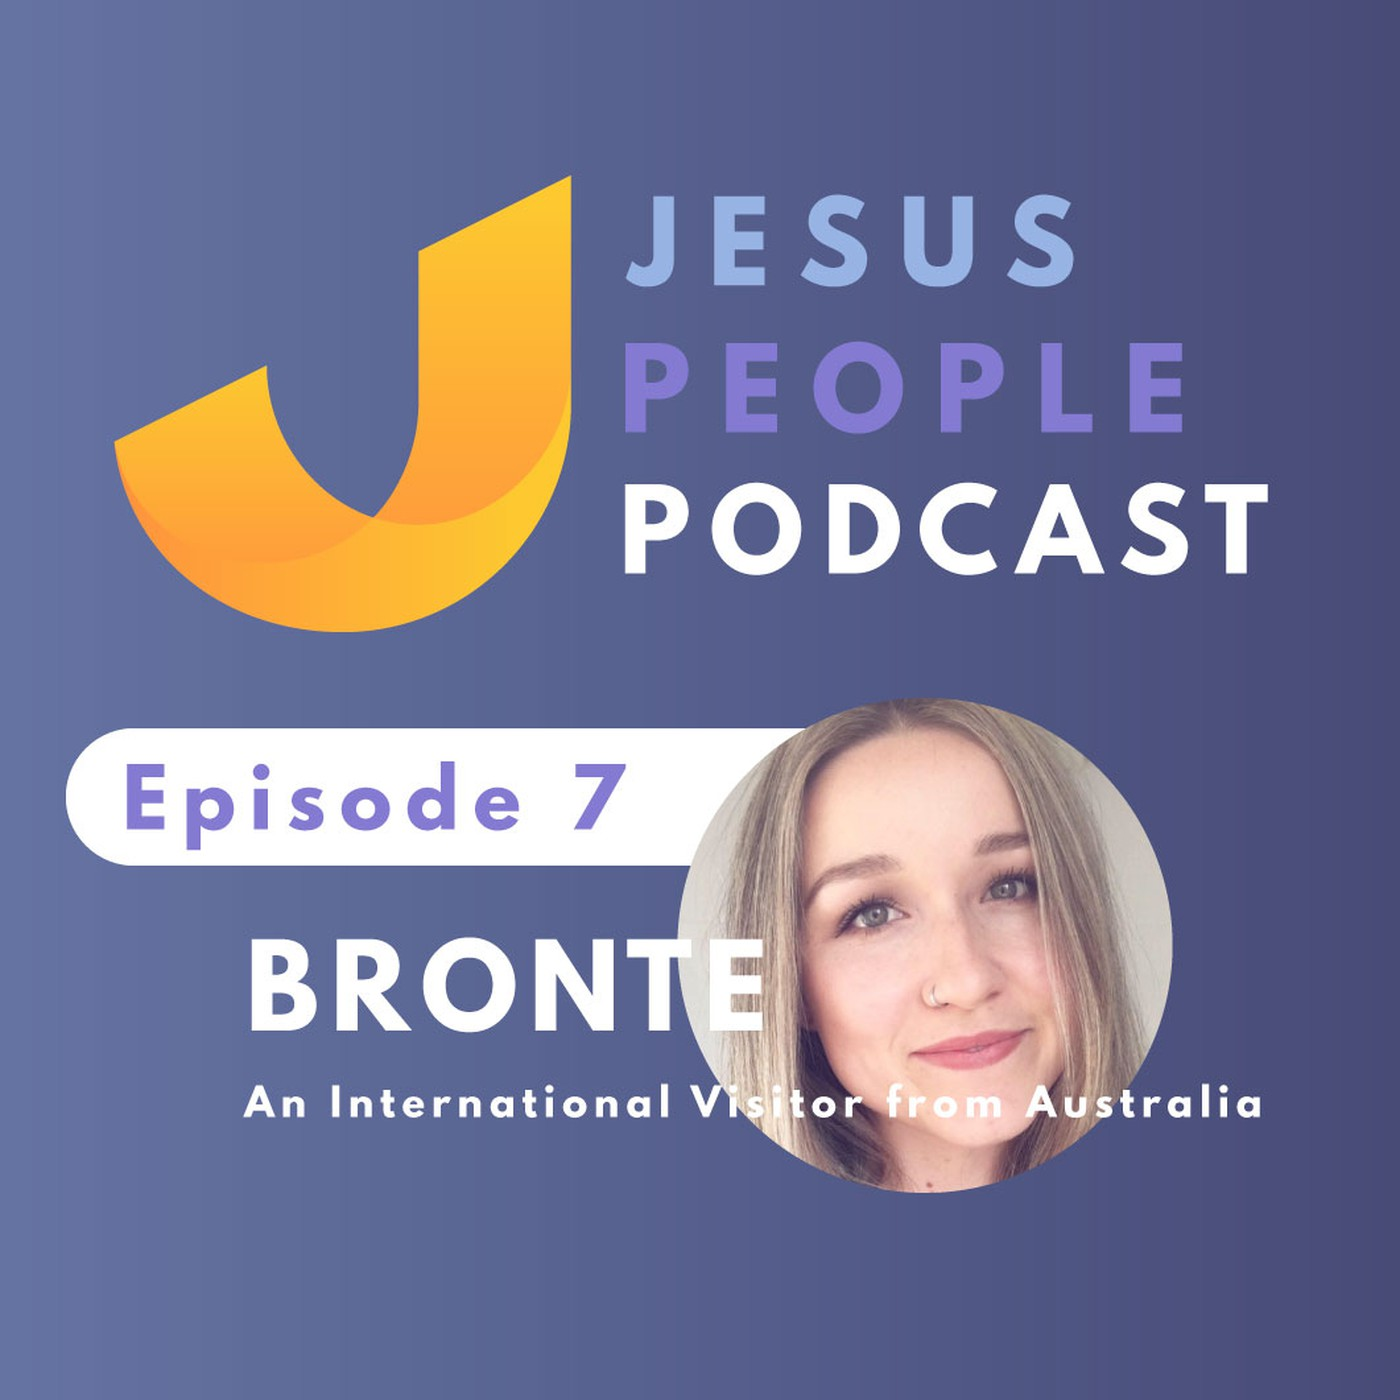 The Jesus People Podcast